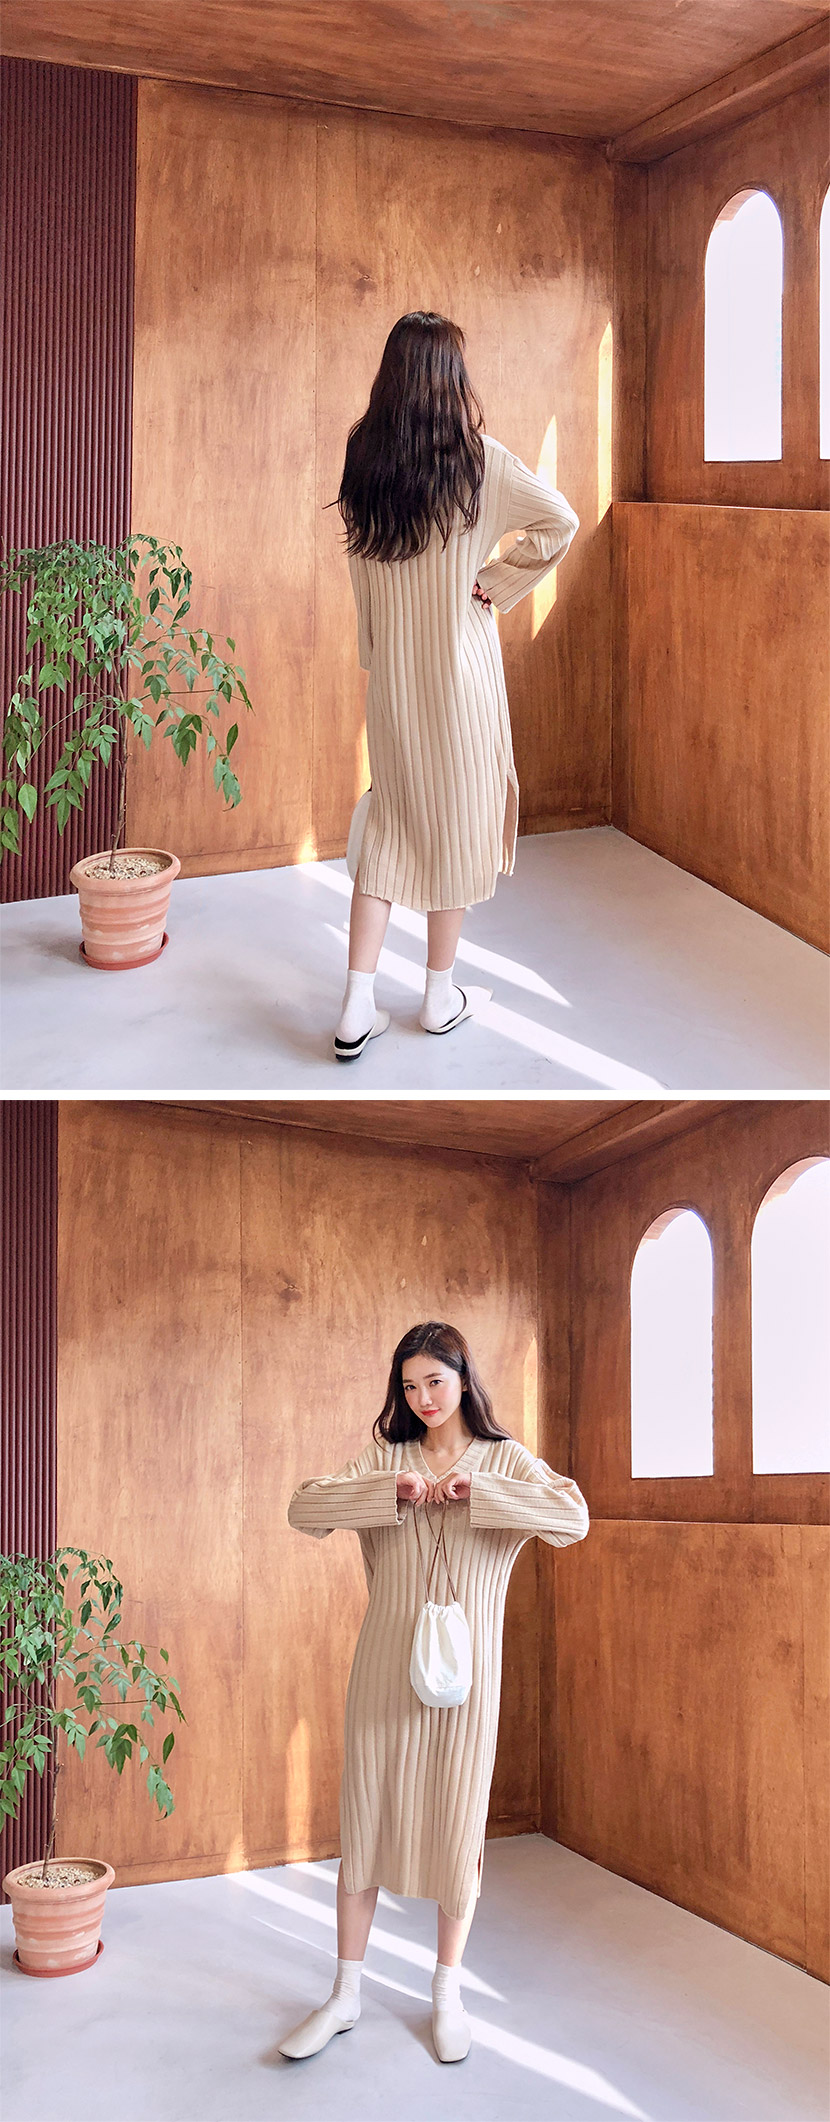 //cdn.nhanh.vn/cdn/store/29770/psCT/20180927/9207982/Soft_Twisted_V_Neck_Dress_(5).jpg